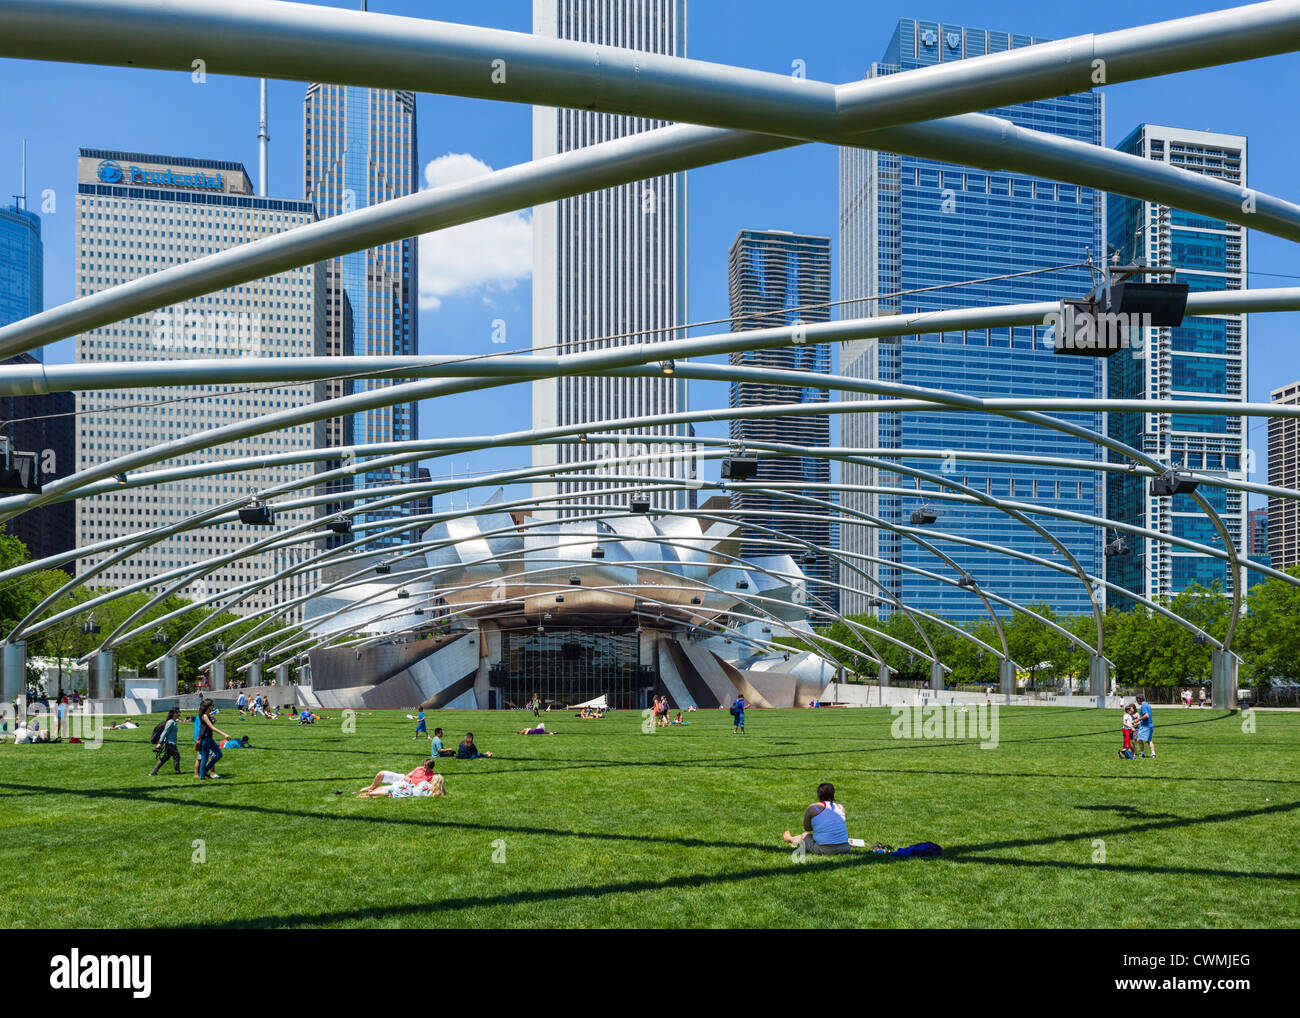 The Jay Pritzker Pavilion and Great Lawn in Millennium Park, Chicago, Illinois, USA - Stock Image